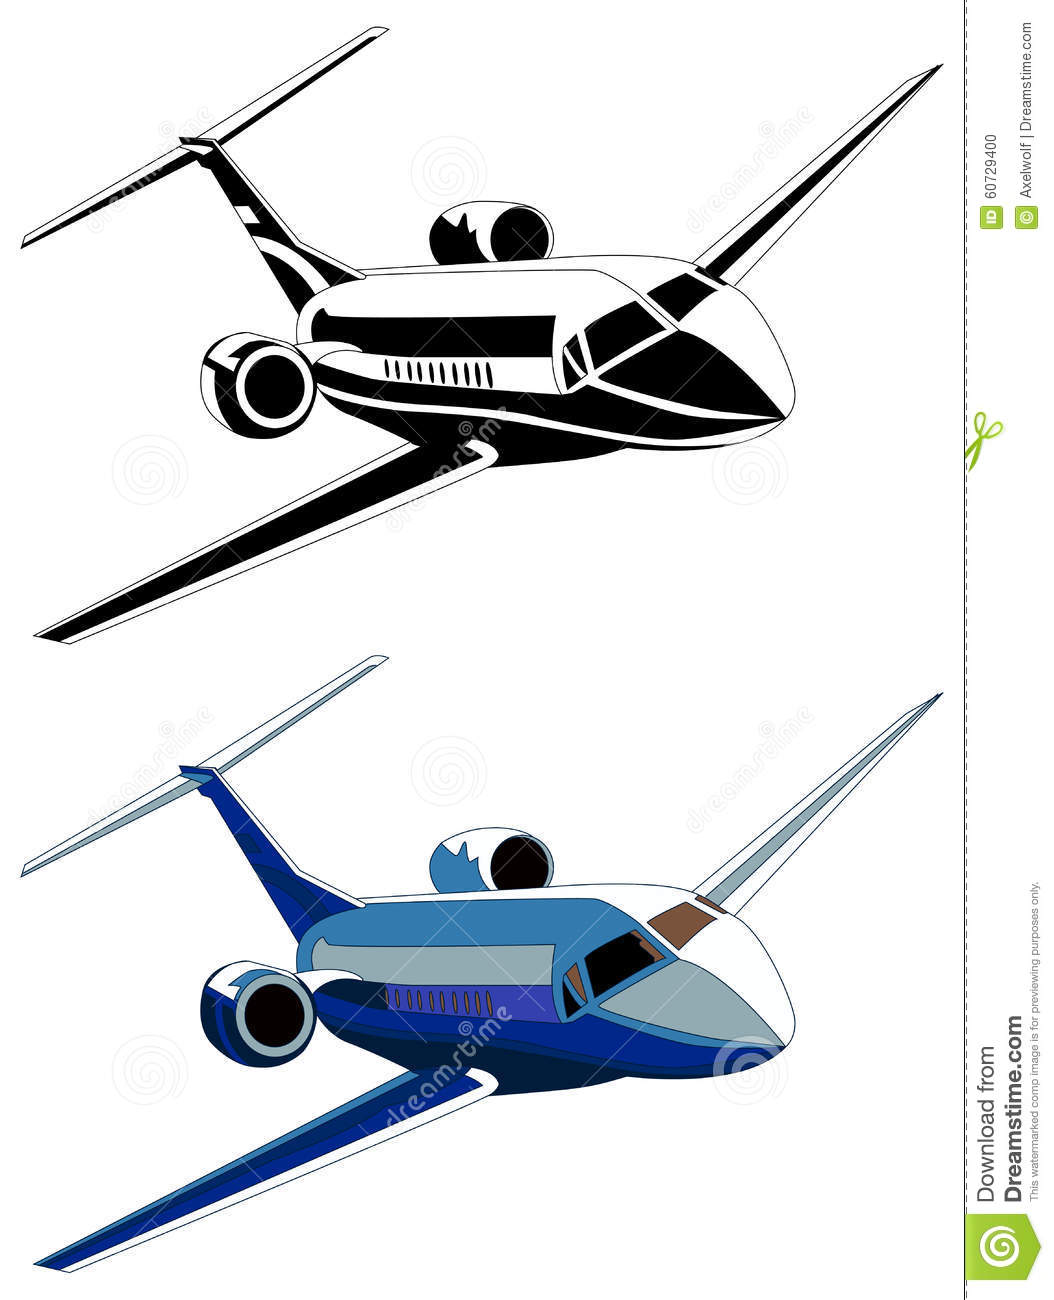 Private Jet Vector Illustration Stock Vector  Image 60729400